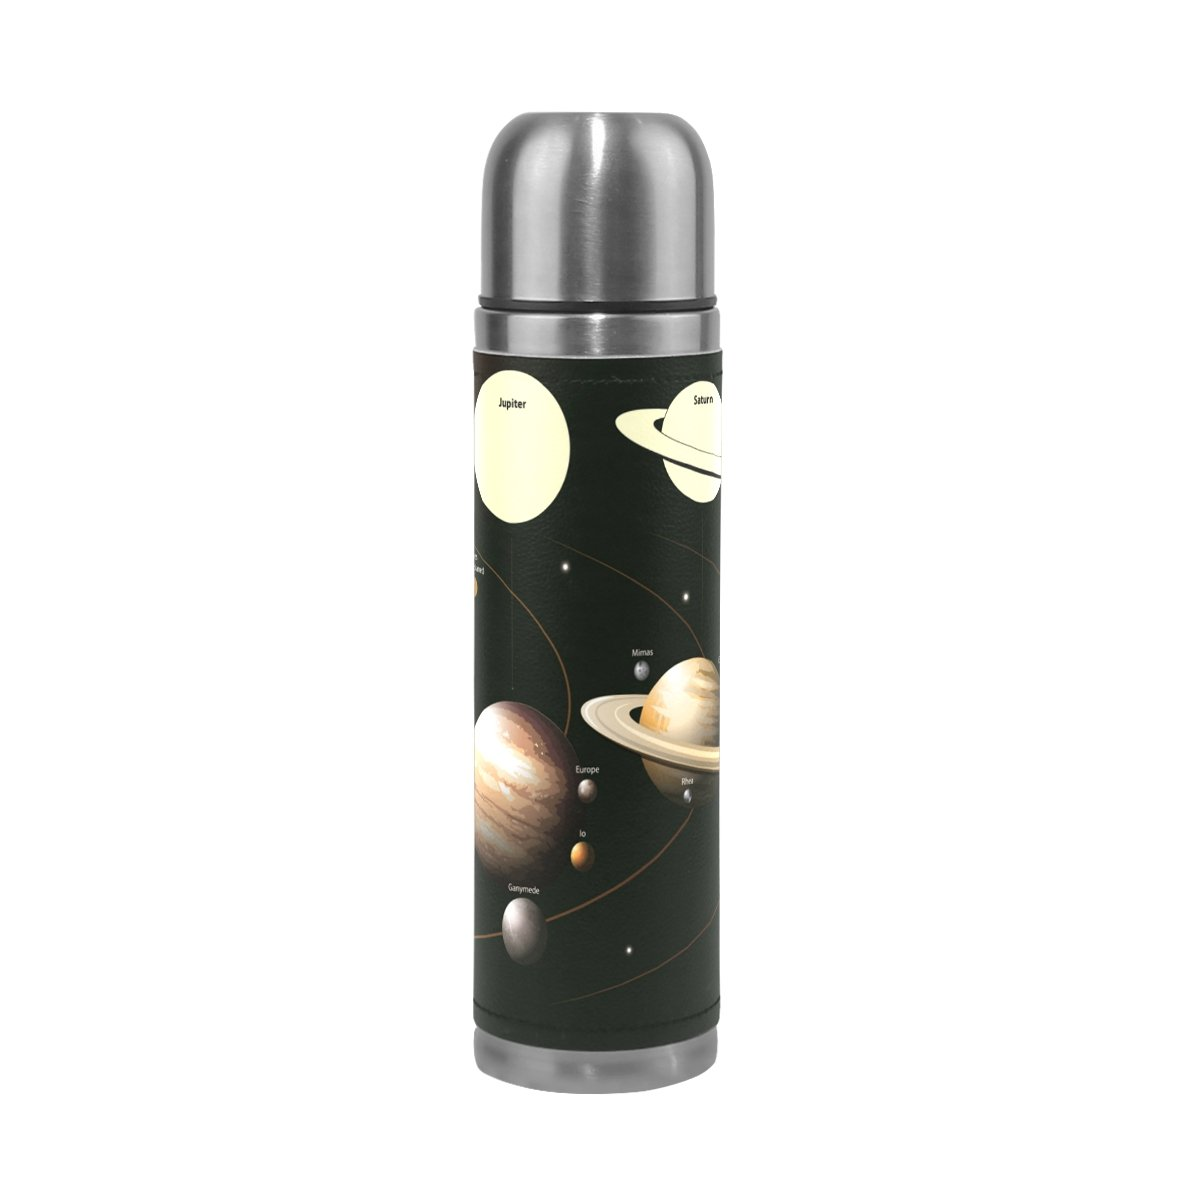 LORVIES Solar System Stainless Steel Thermos Water Bottle Vacuum Insulated Cup Leak Proof Double Vacuum Bottle, PU Leather Travel Thermal Mug,17 oz